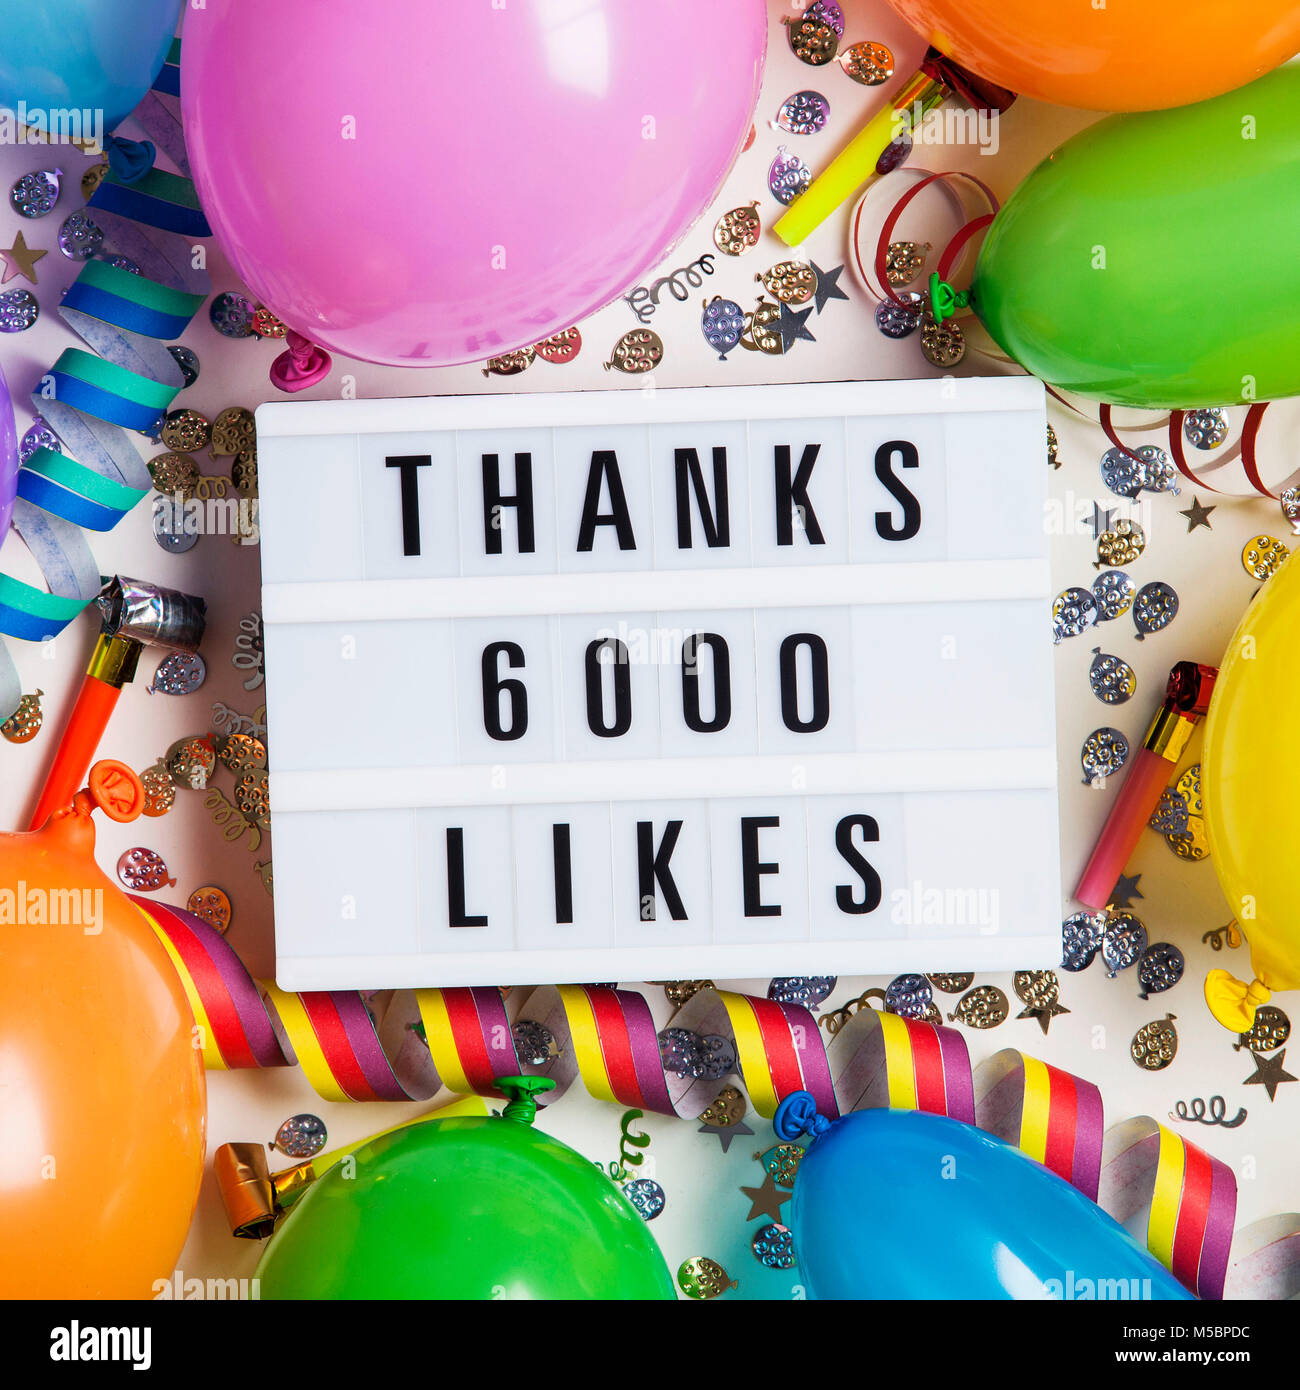 Thanks 6 thousand likes social media lightbox background. Celebration of followers, subscribers, likes. - Stock Image